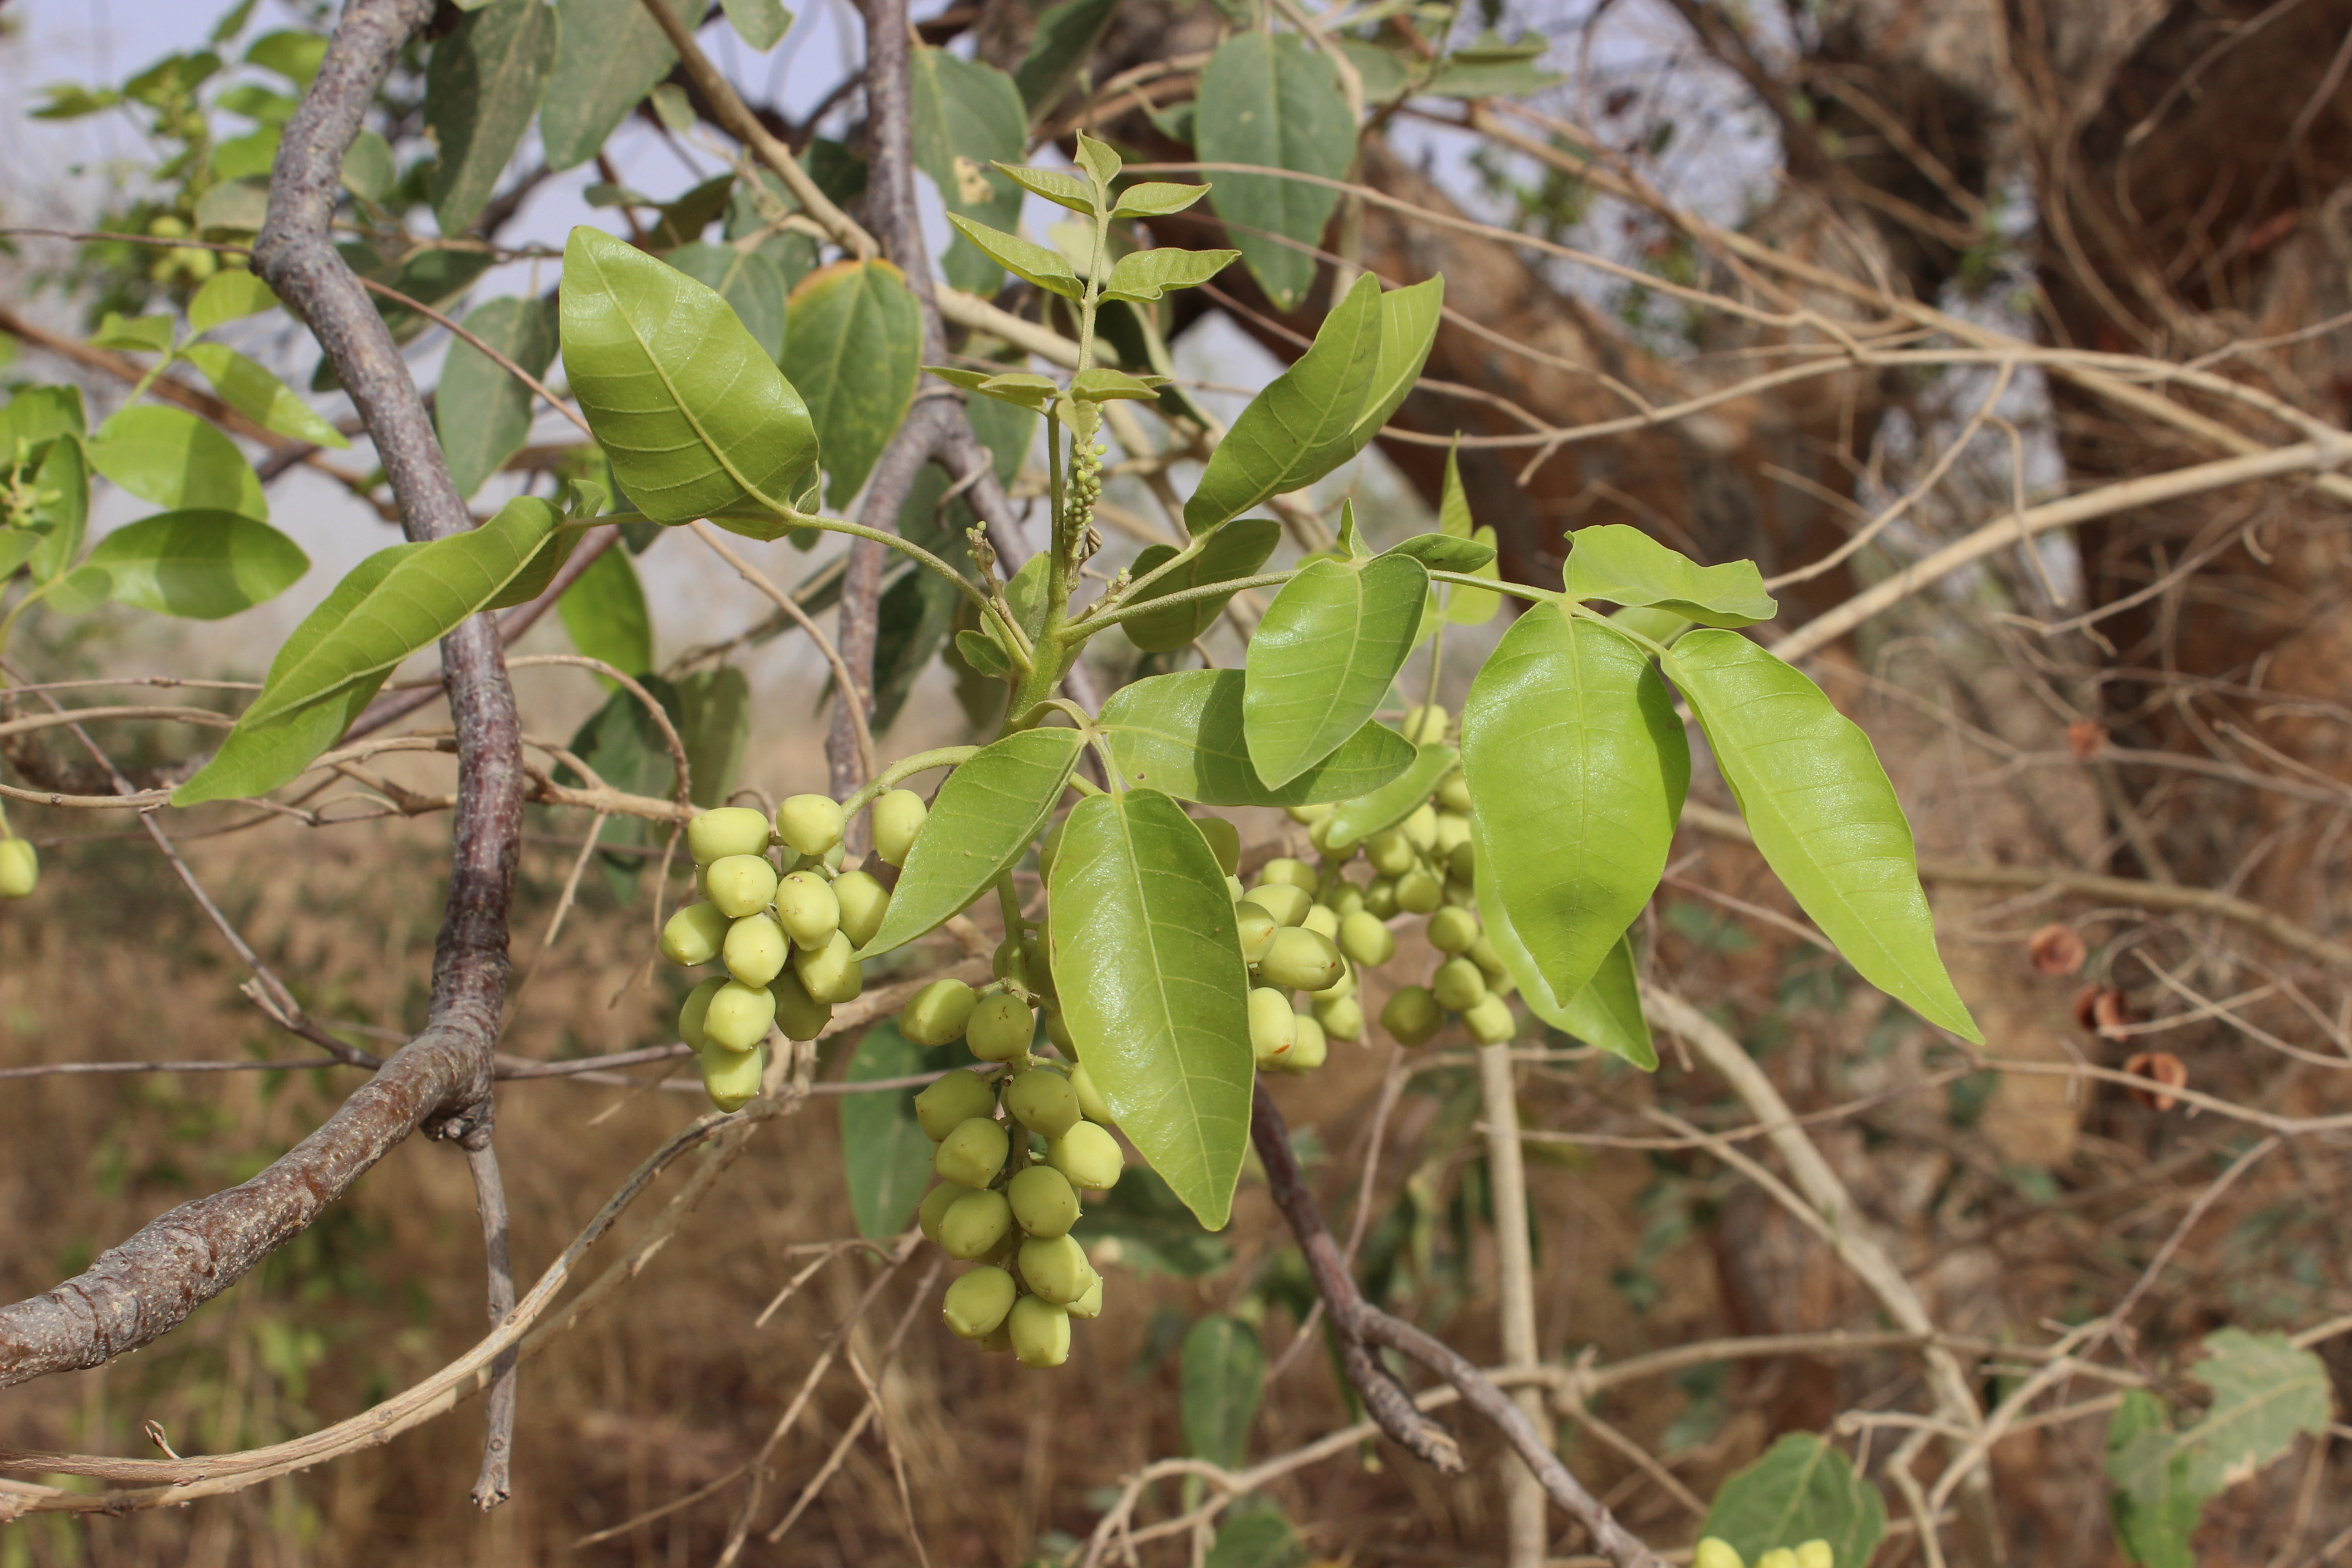 In Africa's Sahel, wild raisins from Lannea microcarpa are an important fruit.